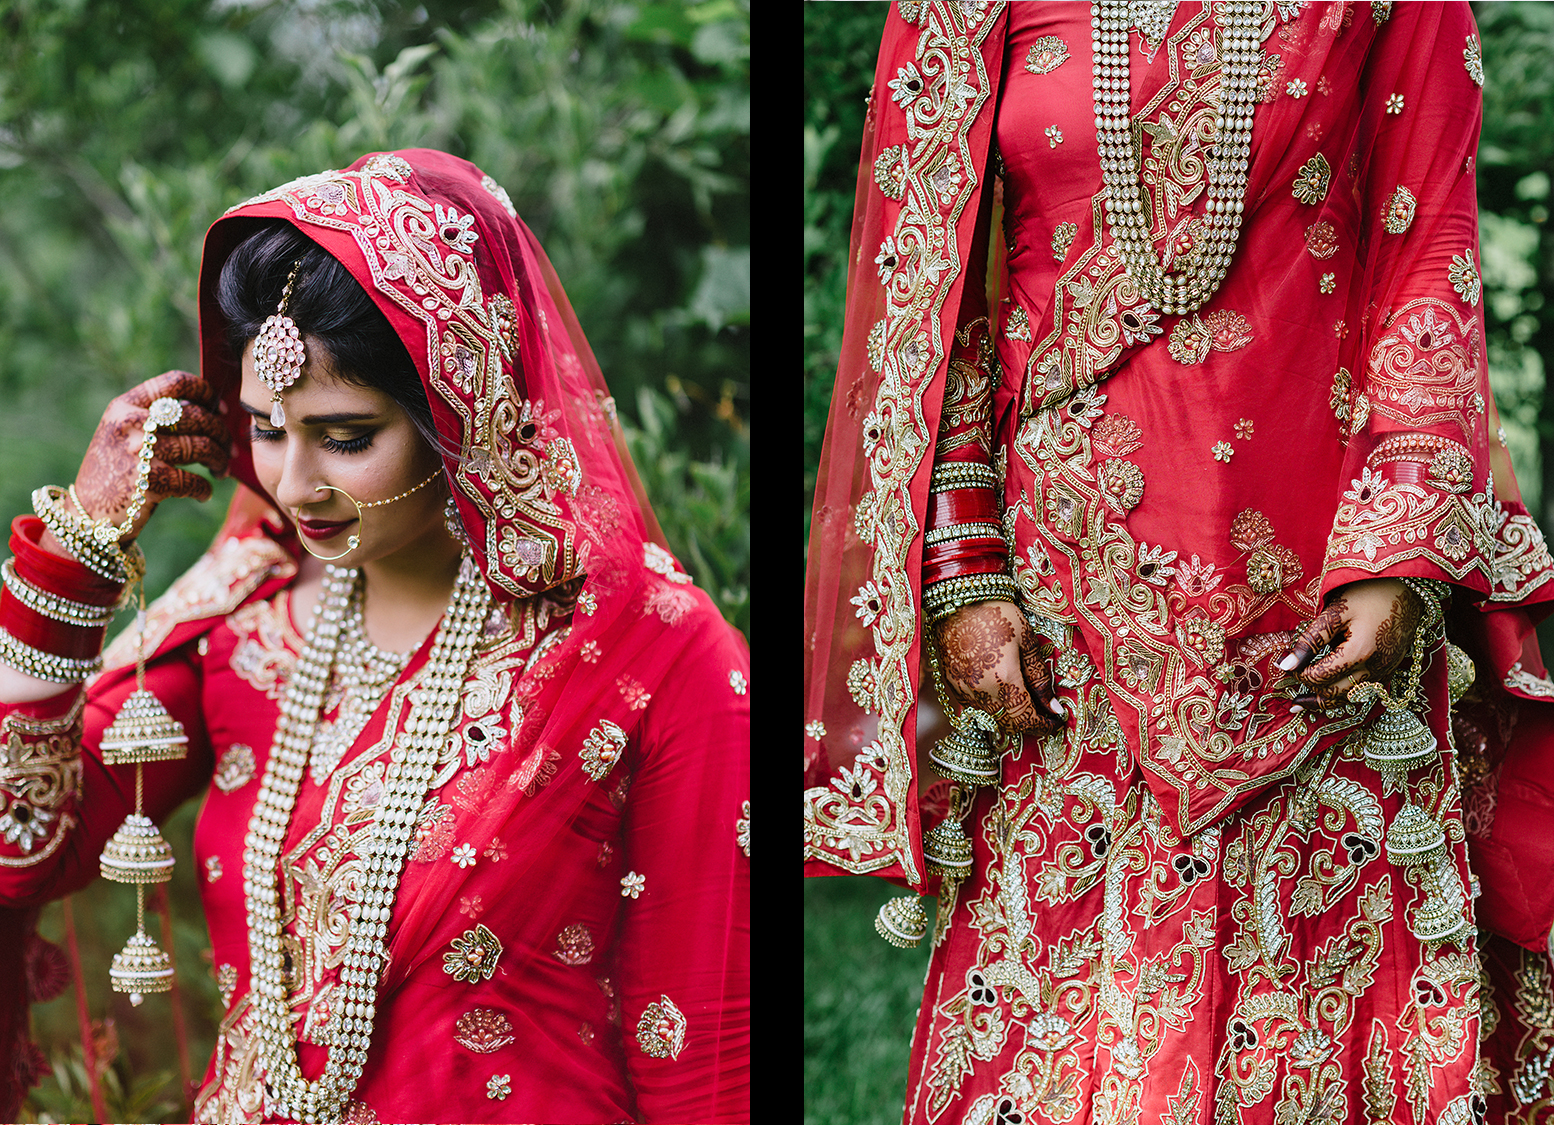 19-Toronto-Photojournalism-wedding-photographers-3B-Photography-Candid-Documentary-Film-Photography-Analog-Ontario-Hamilton-Port-Perry-best-venues-portrait-of-bride-in-traditional-dress-henna-beautiful.jpg